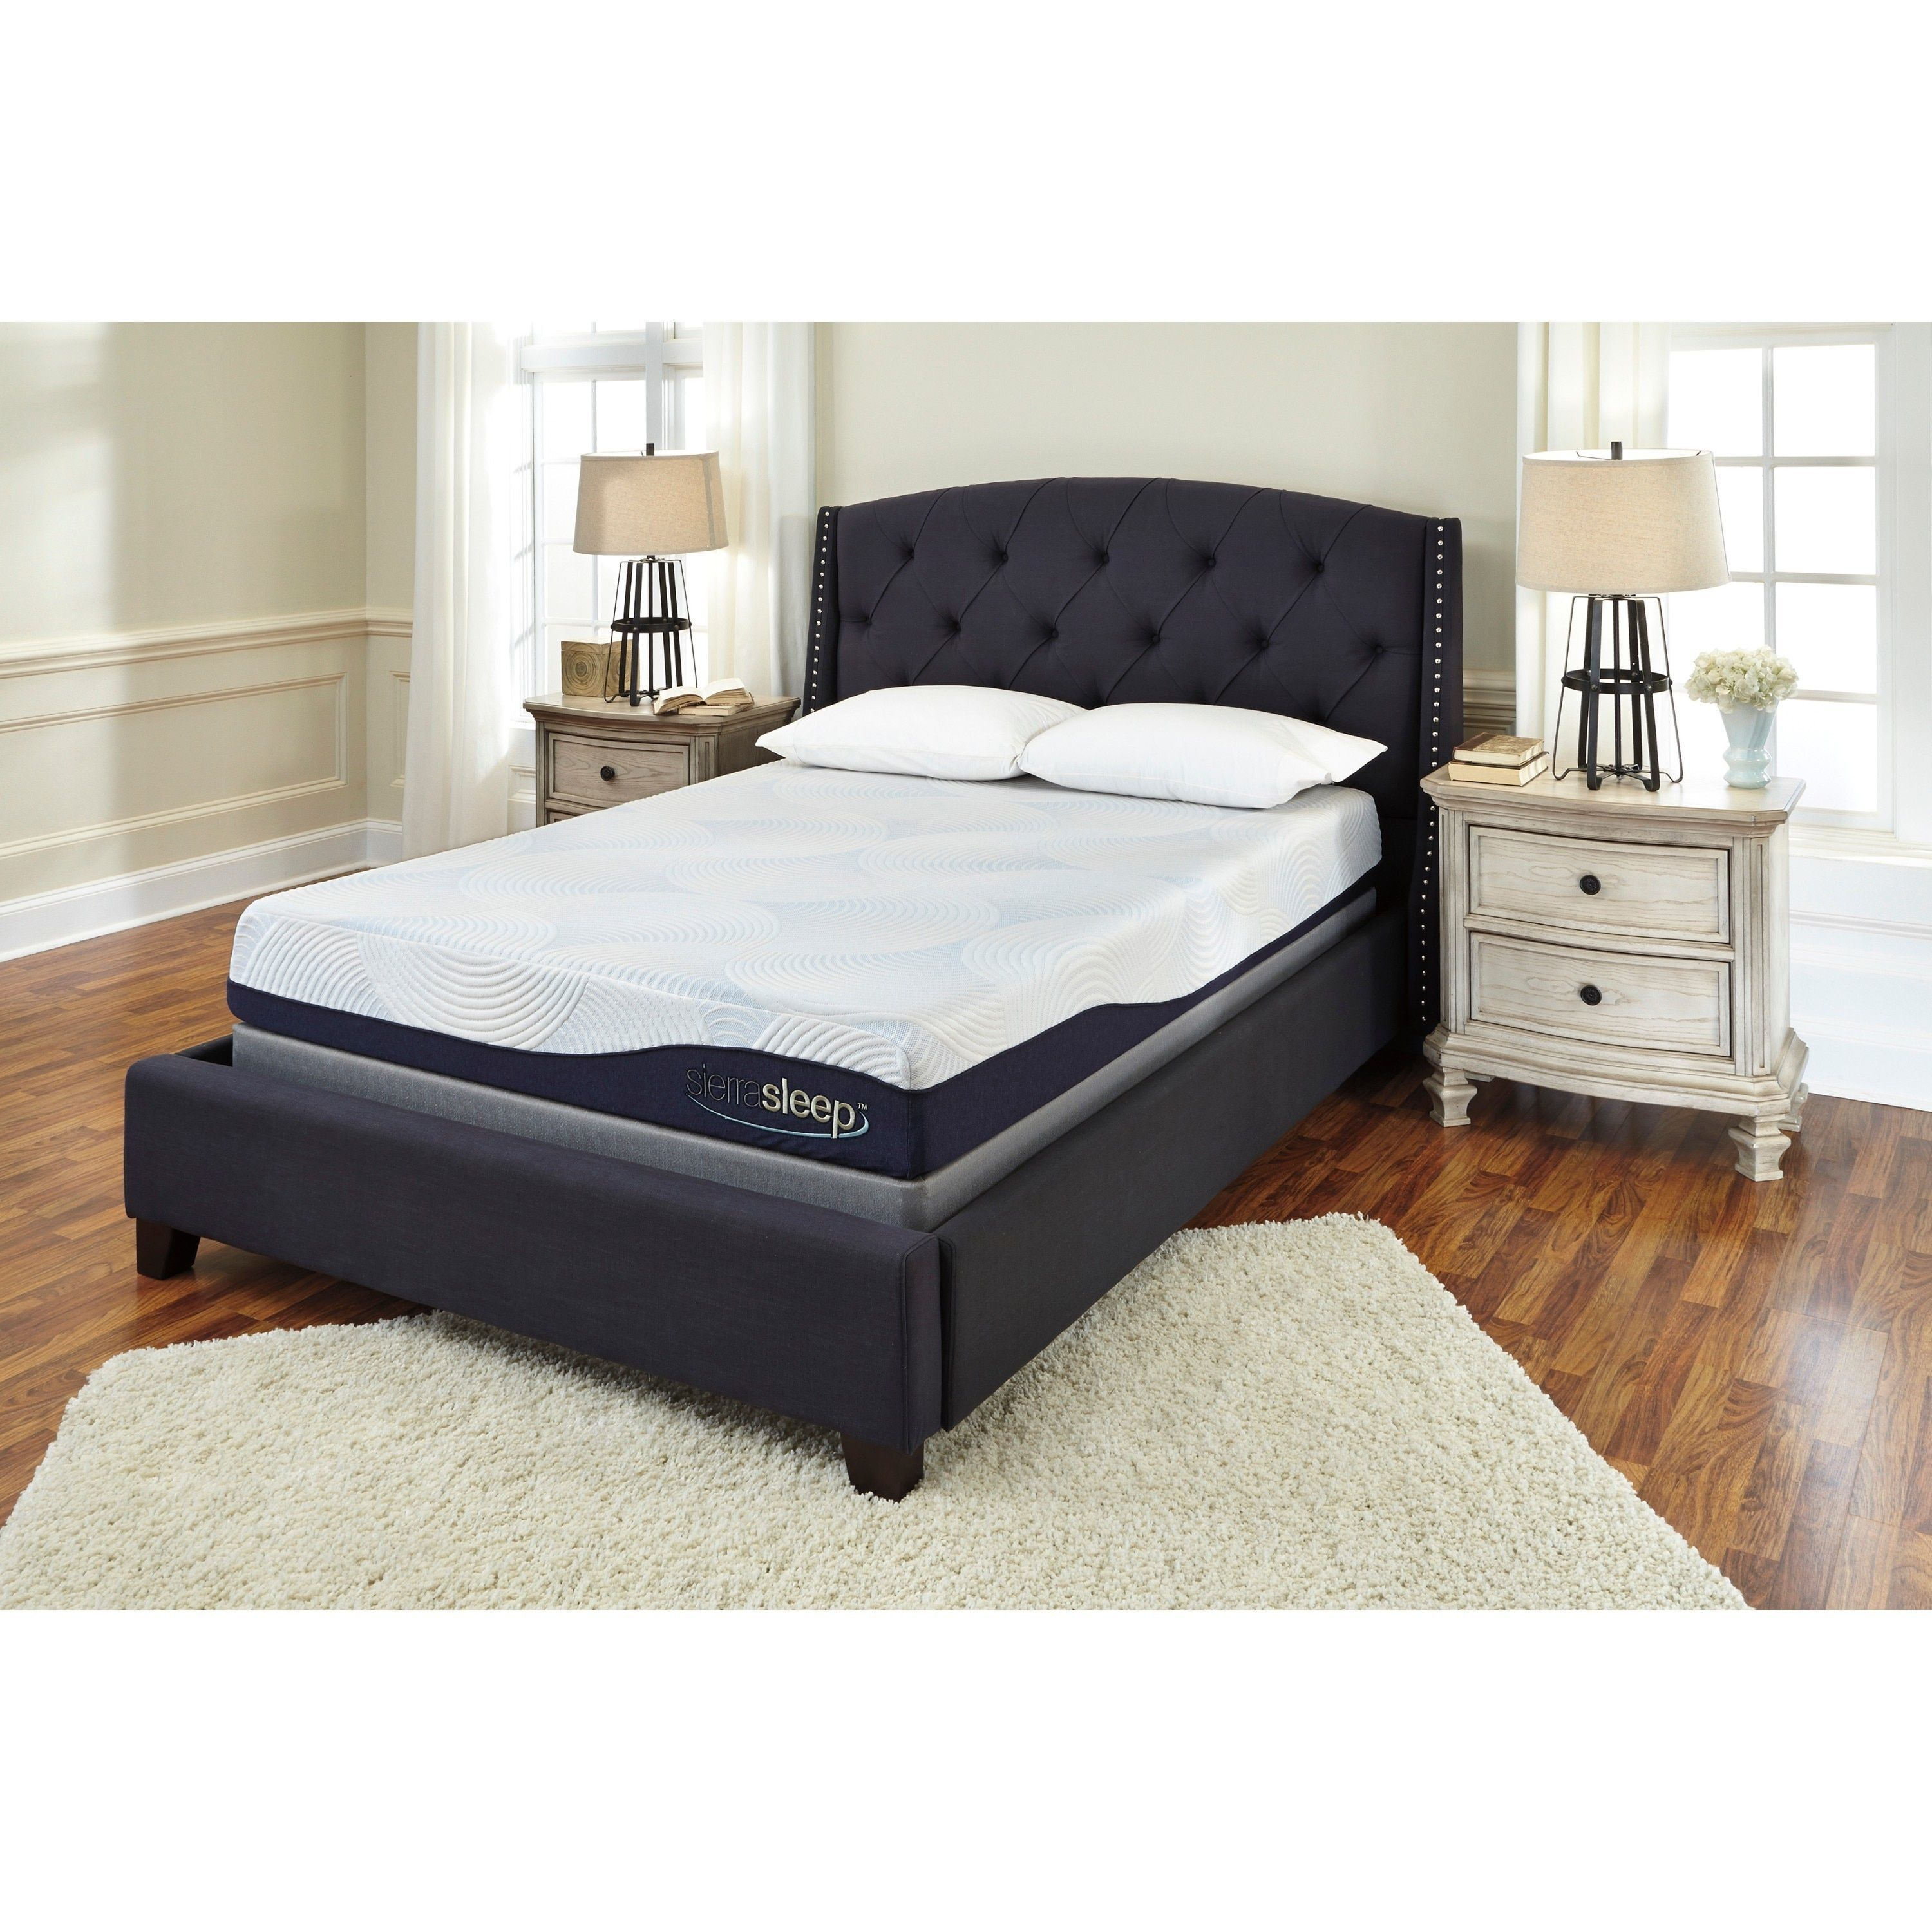 sierra sleep by ashley 9 inch full size gel memory foam mattress by